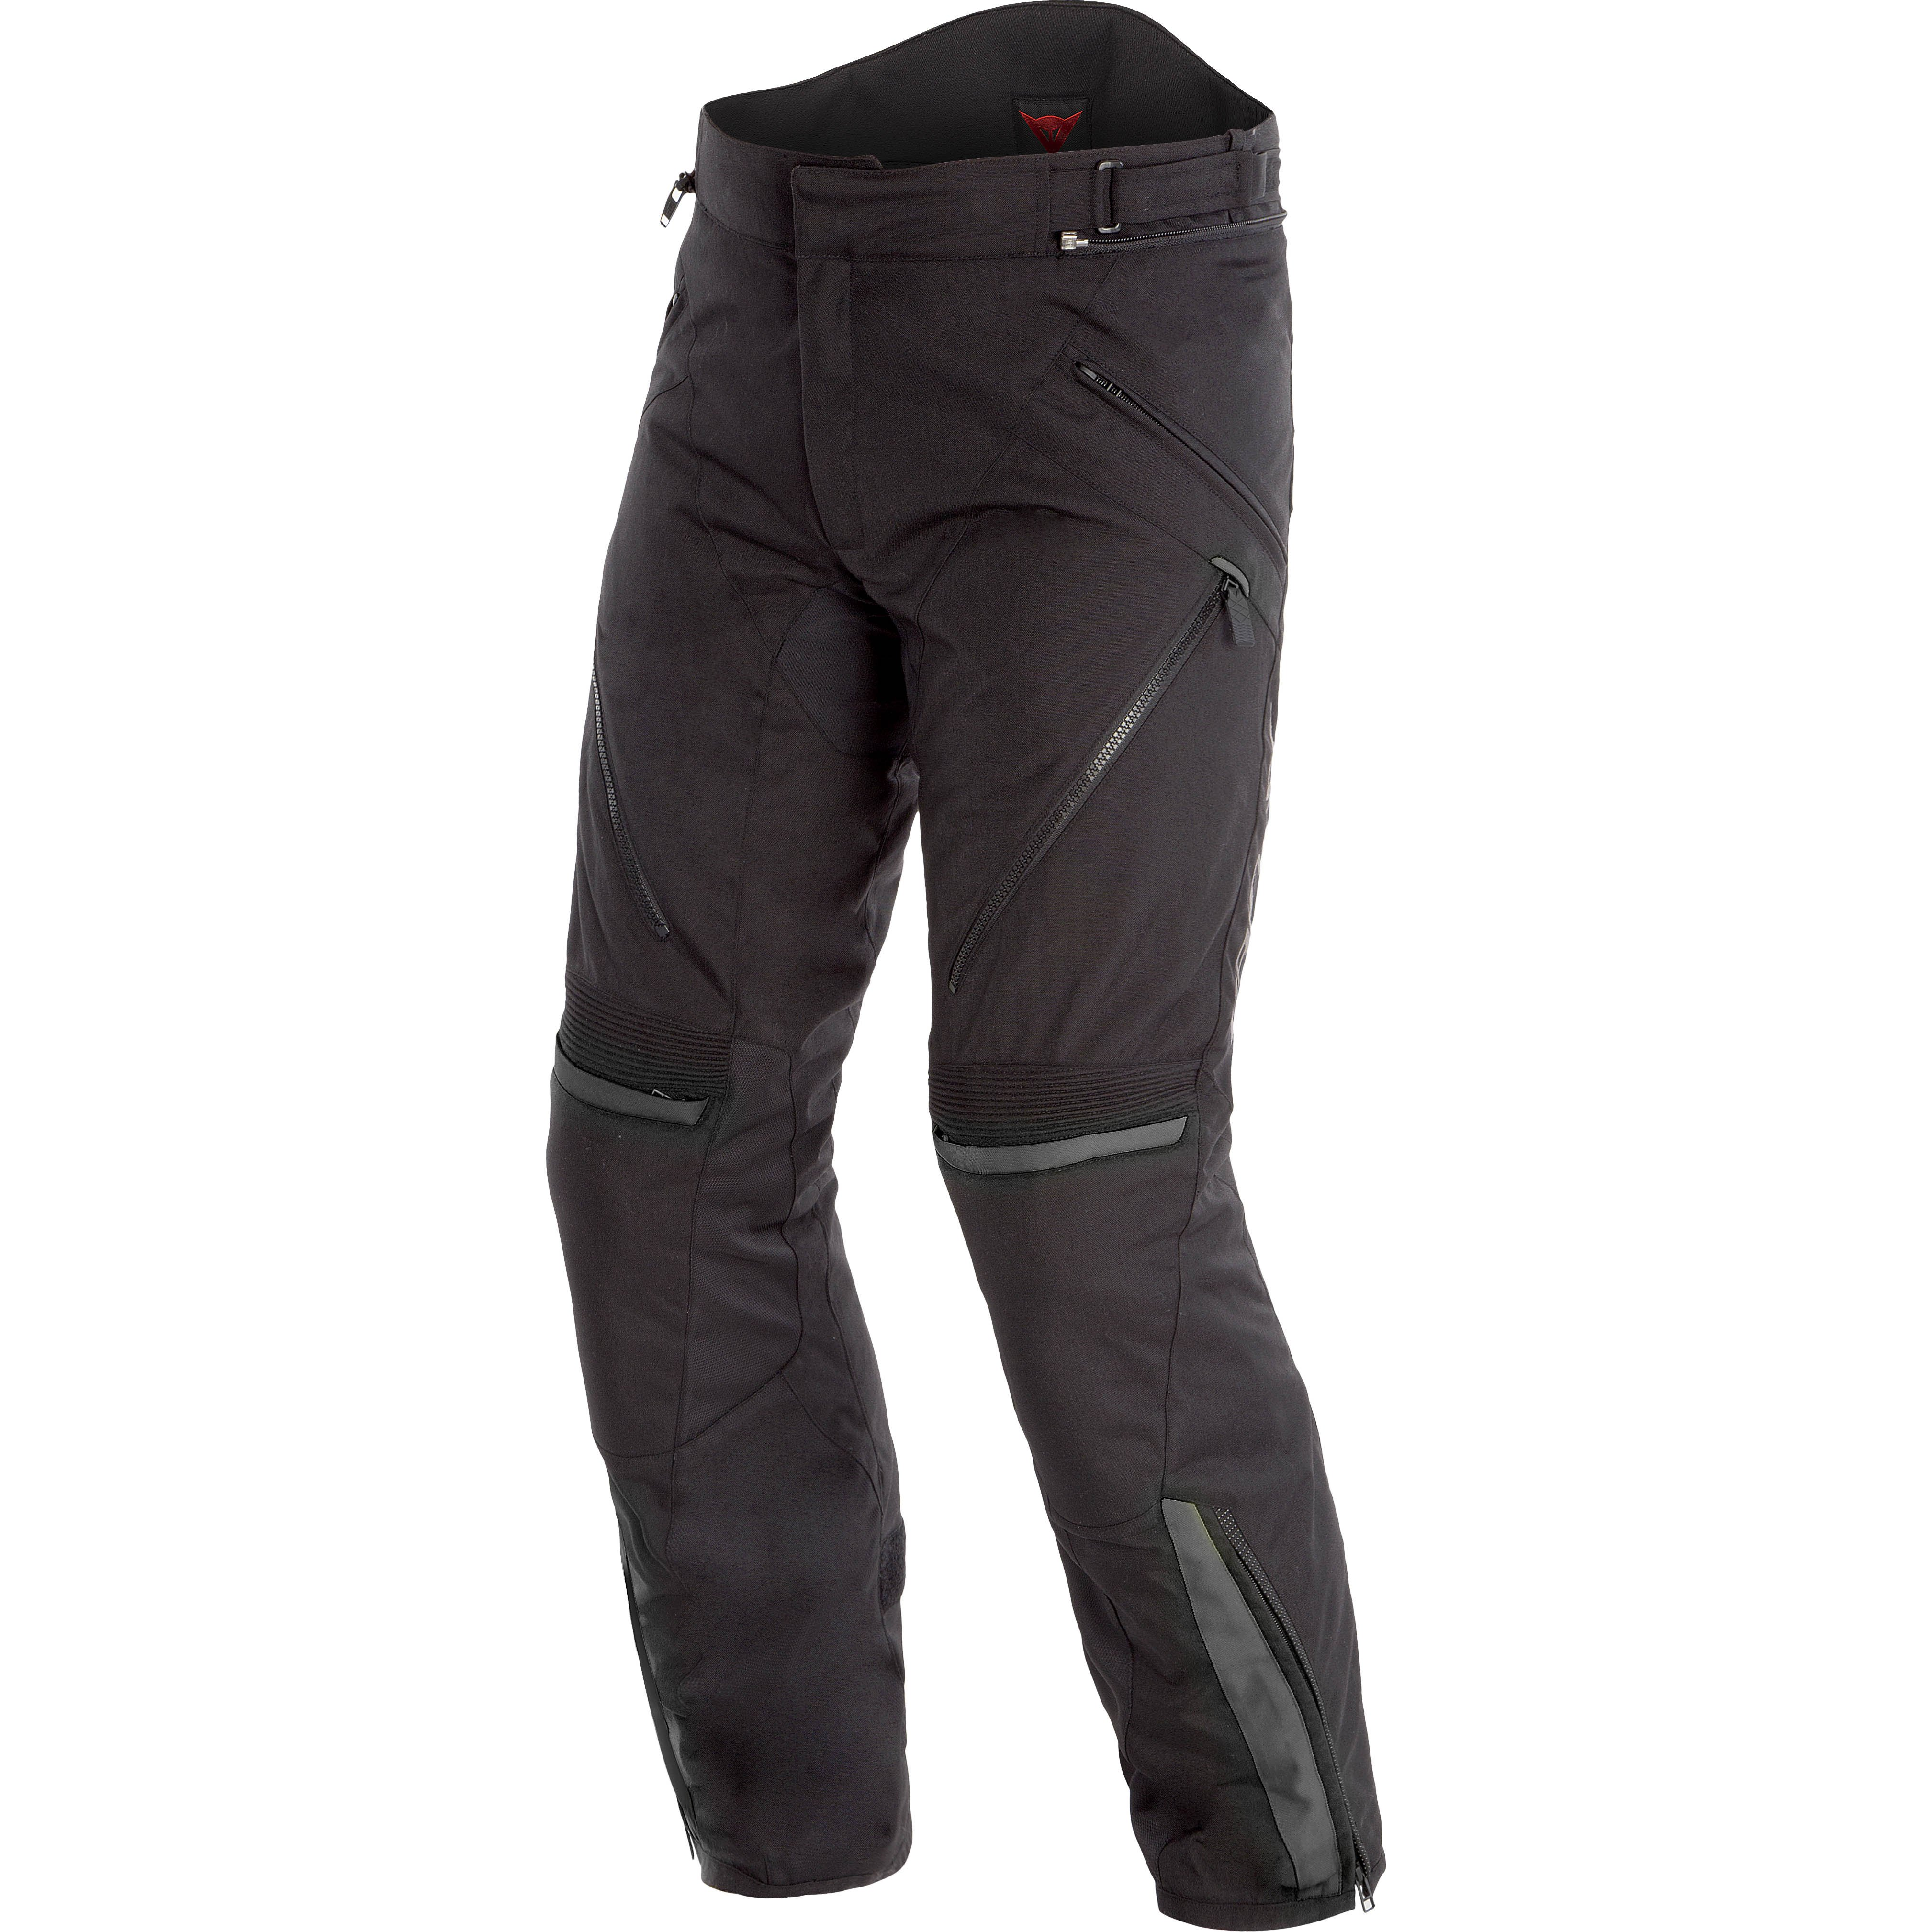 DAINESE TEMPEST 2 D-DRY PANTS Y21